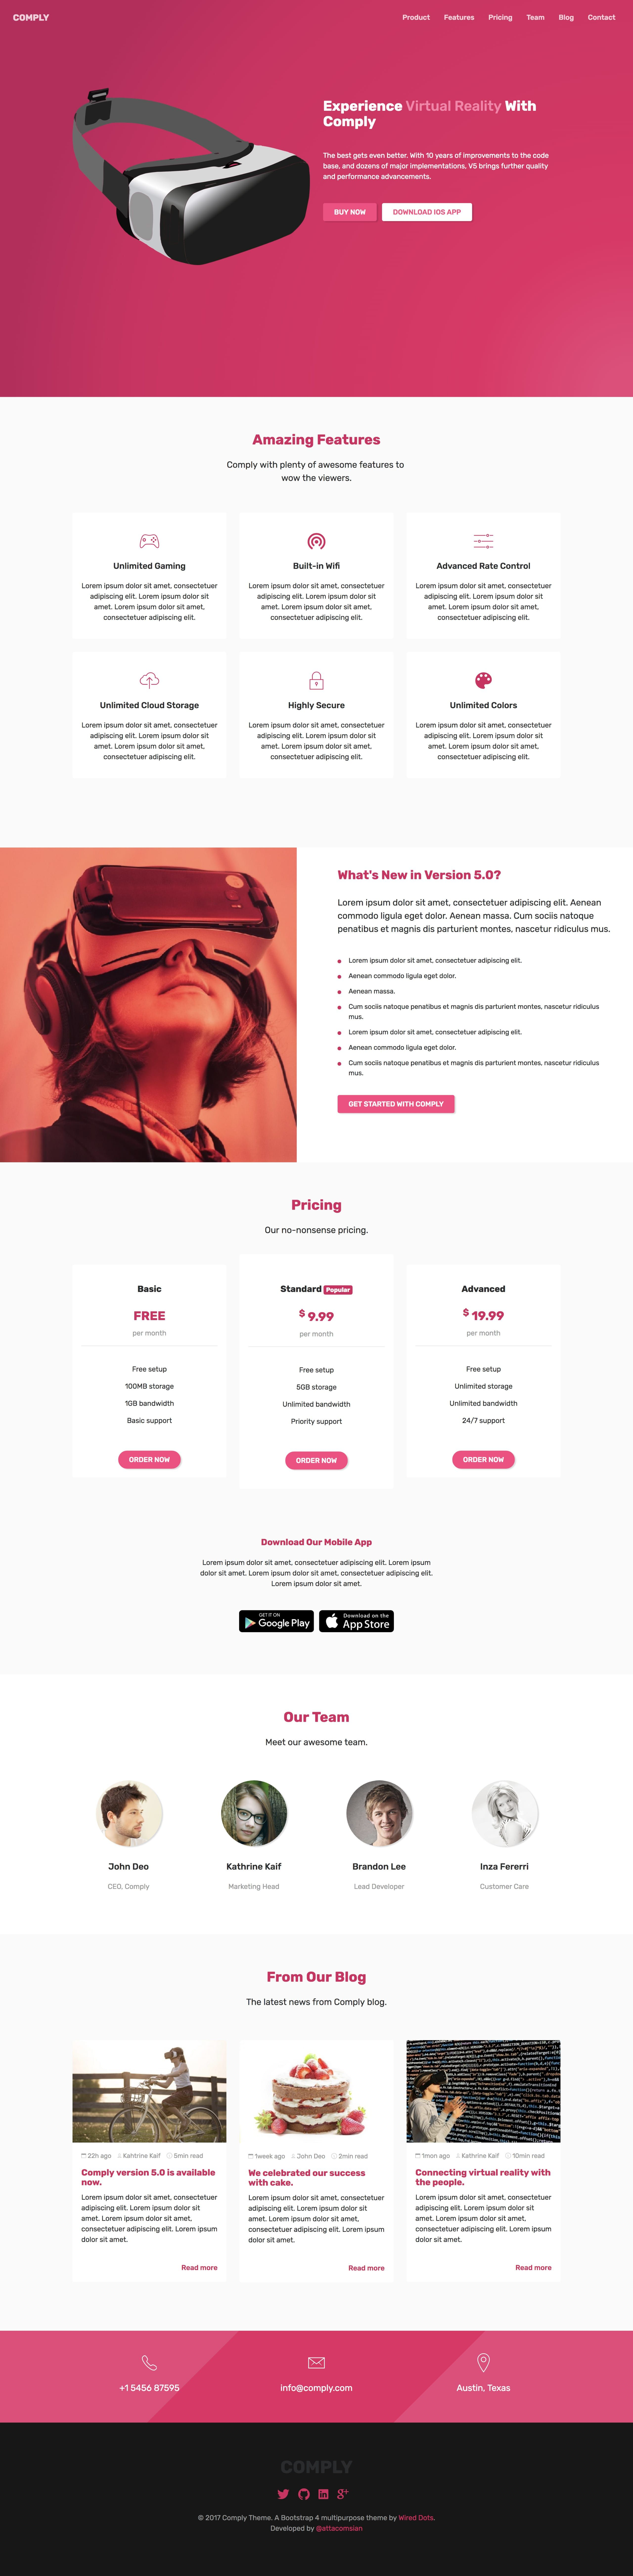 Comply' is a FREE multi-use Landing Page HTML template built